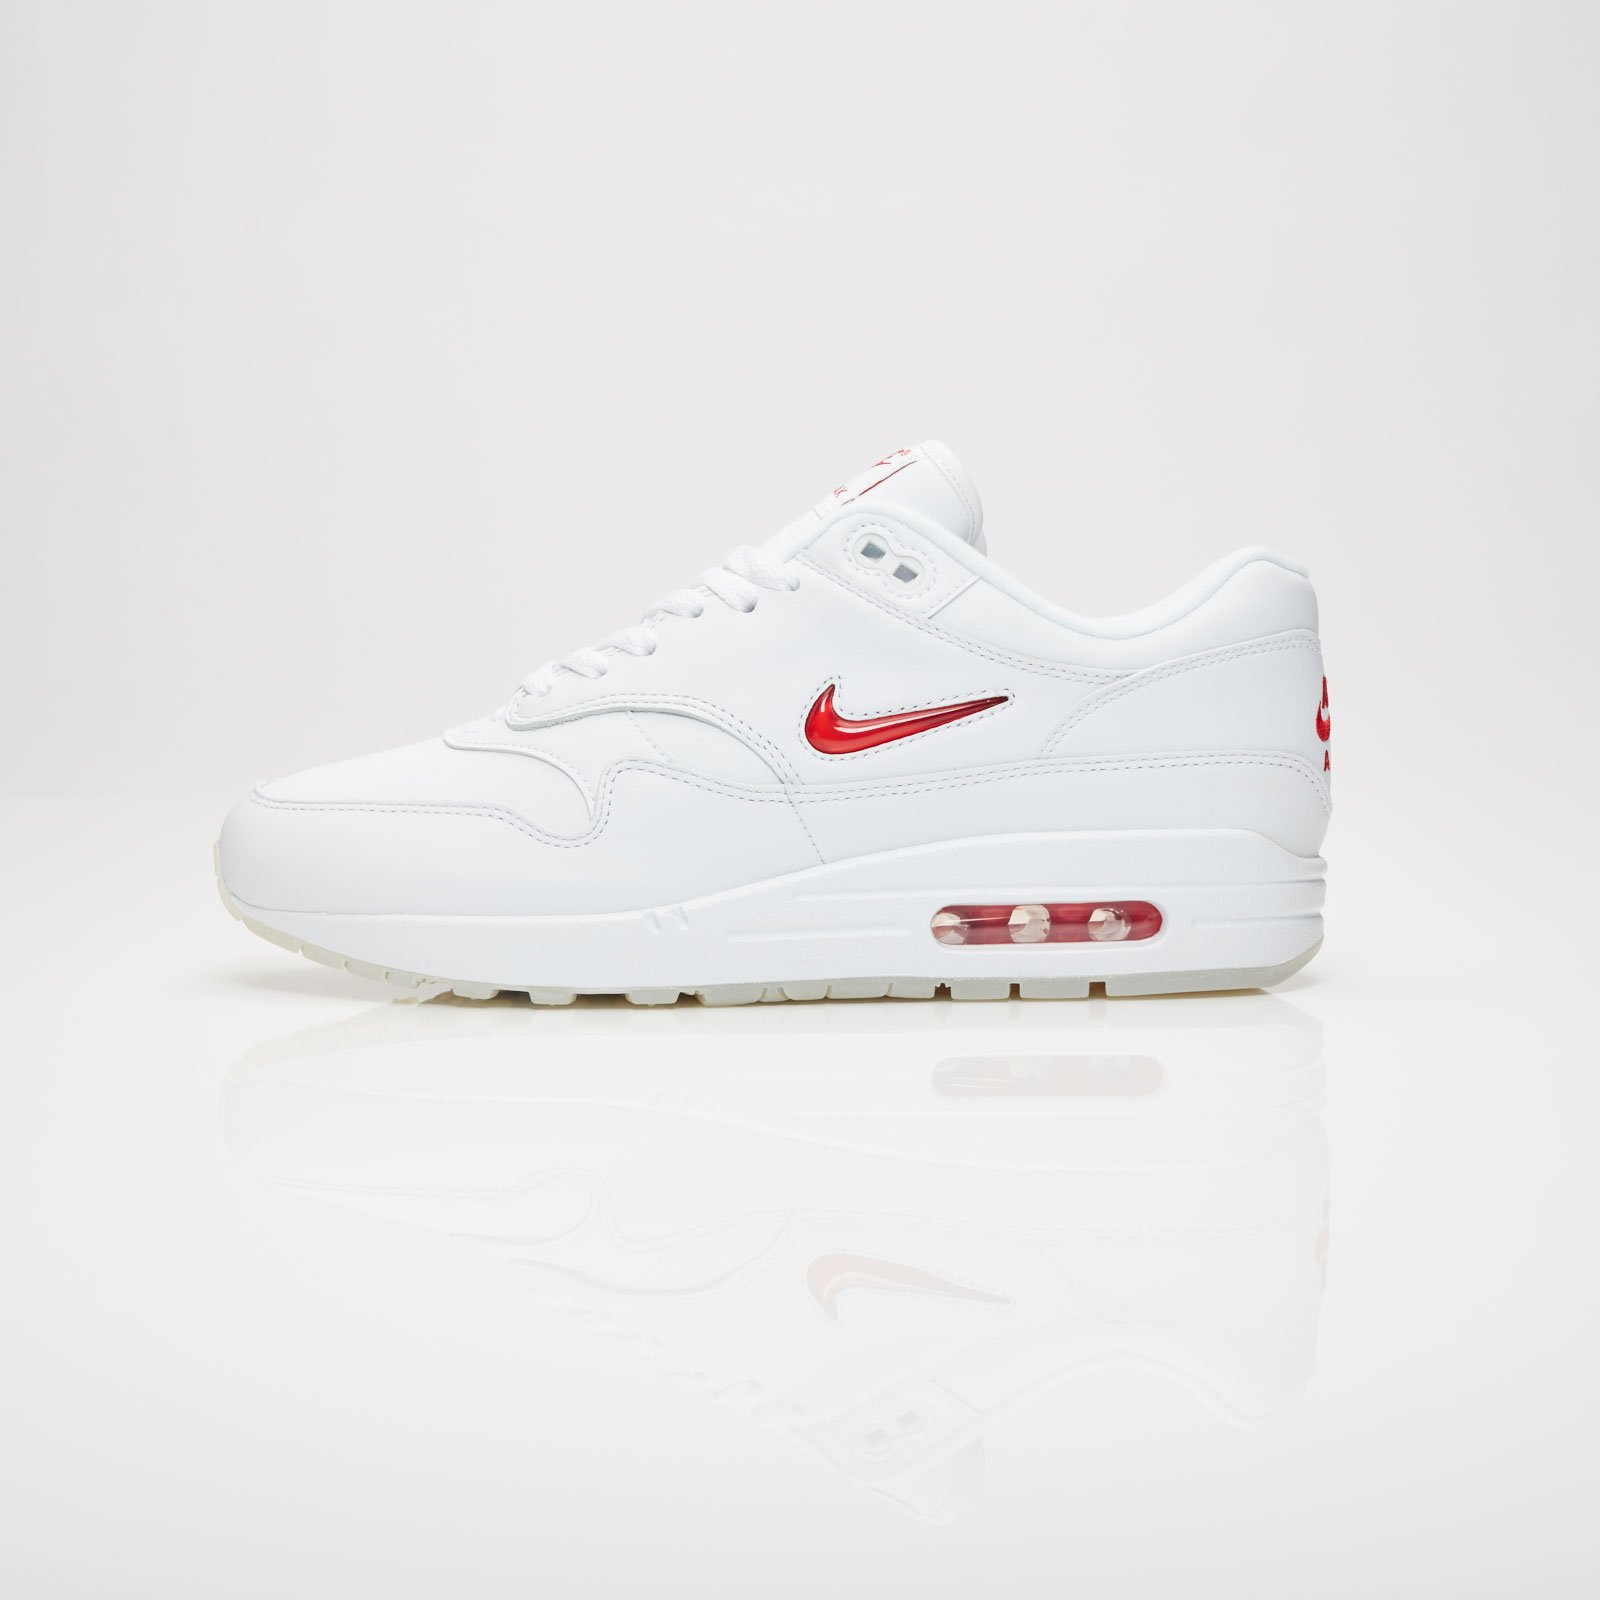 factory authentic f5f73 ccb82 Nike Air Max 1 Premium SC - 918354-104 - Sneakersnstuff   sneakers    streetwear online since 1999